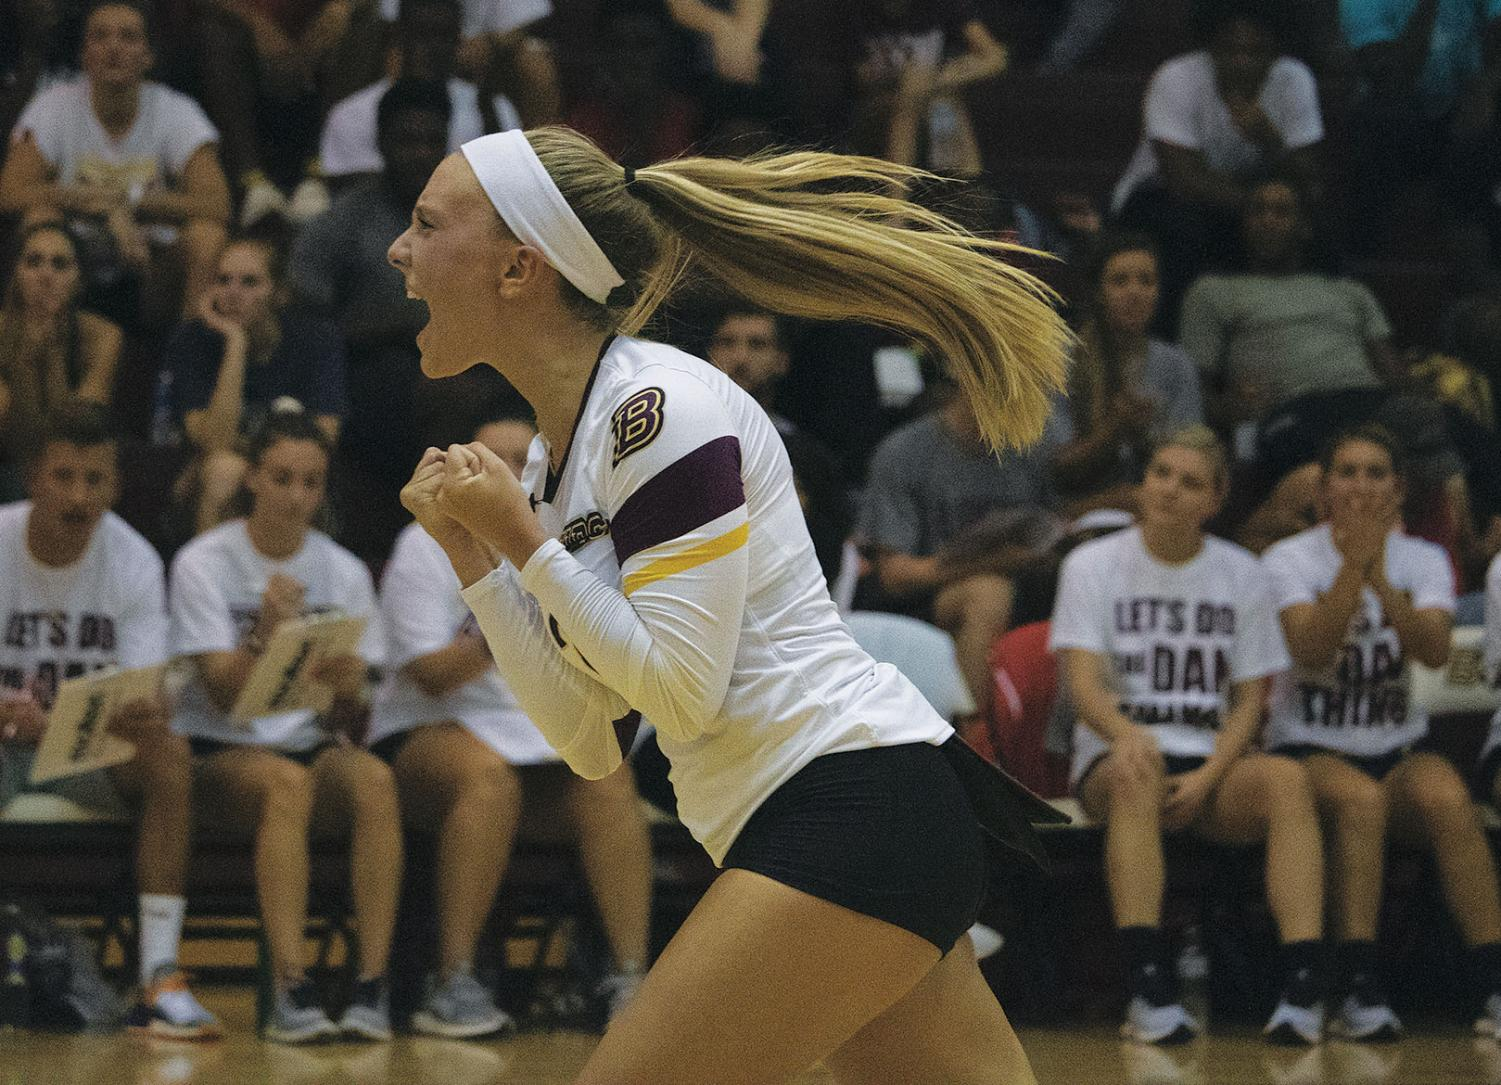 Junior defensive specialist Alyssa Cianciulli (above) rejoins the Huskies after leading the team in digs with 645 in the 2018 season.